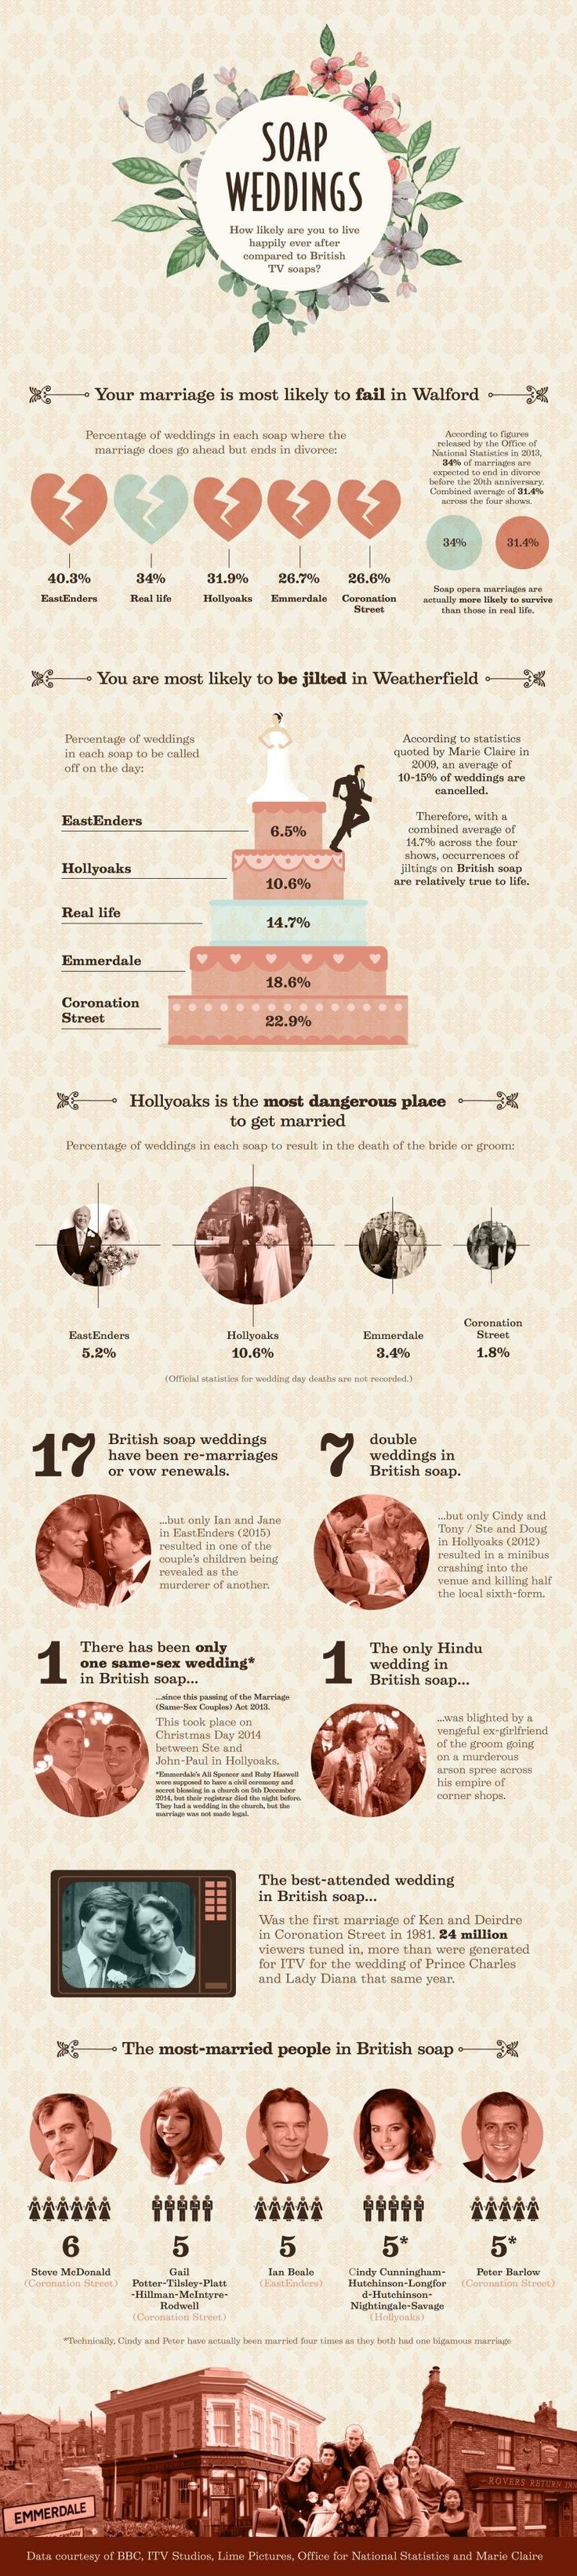 Infographic: Soap Weddings Tying the knot rarely goes smoothly in TV soaps, but how do weddings in EastEnders, Coronation Street, Hollyoaks and Emmerdale compare? And is real life any more hopeful?